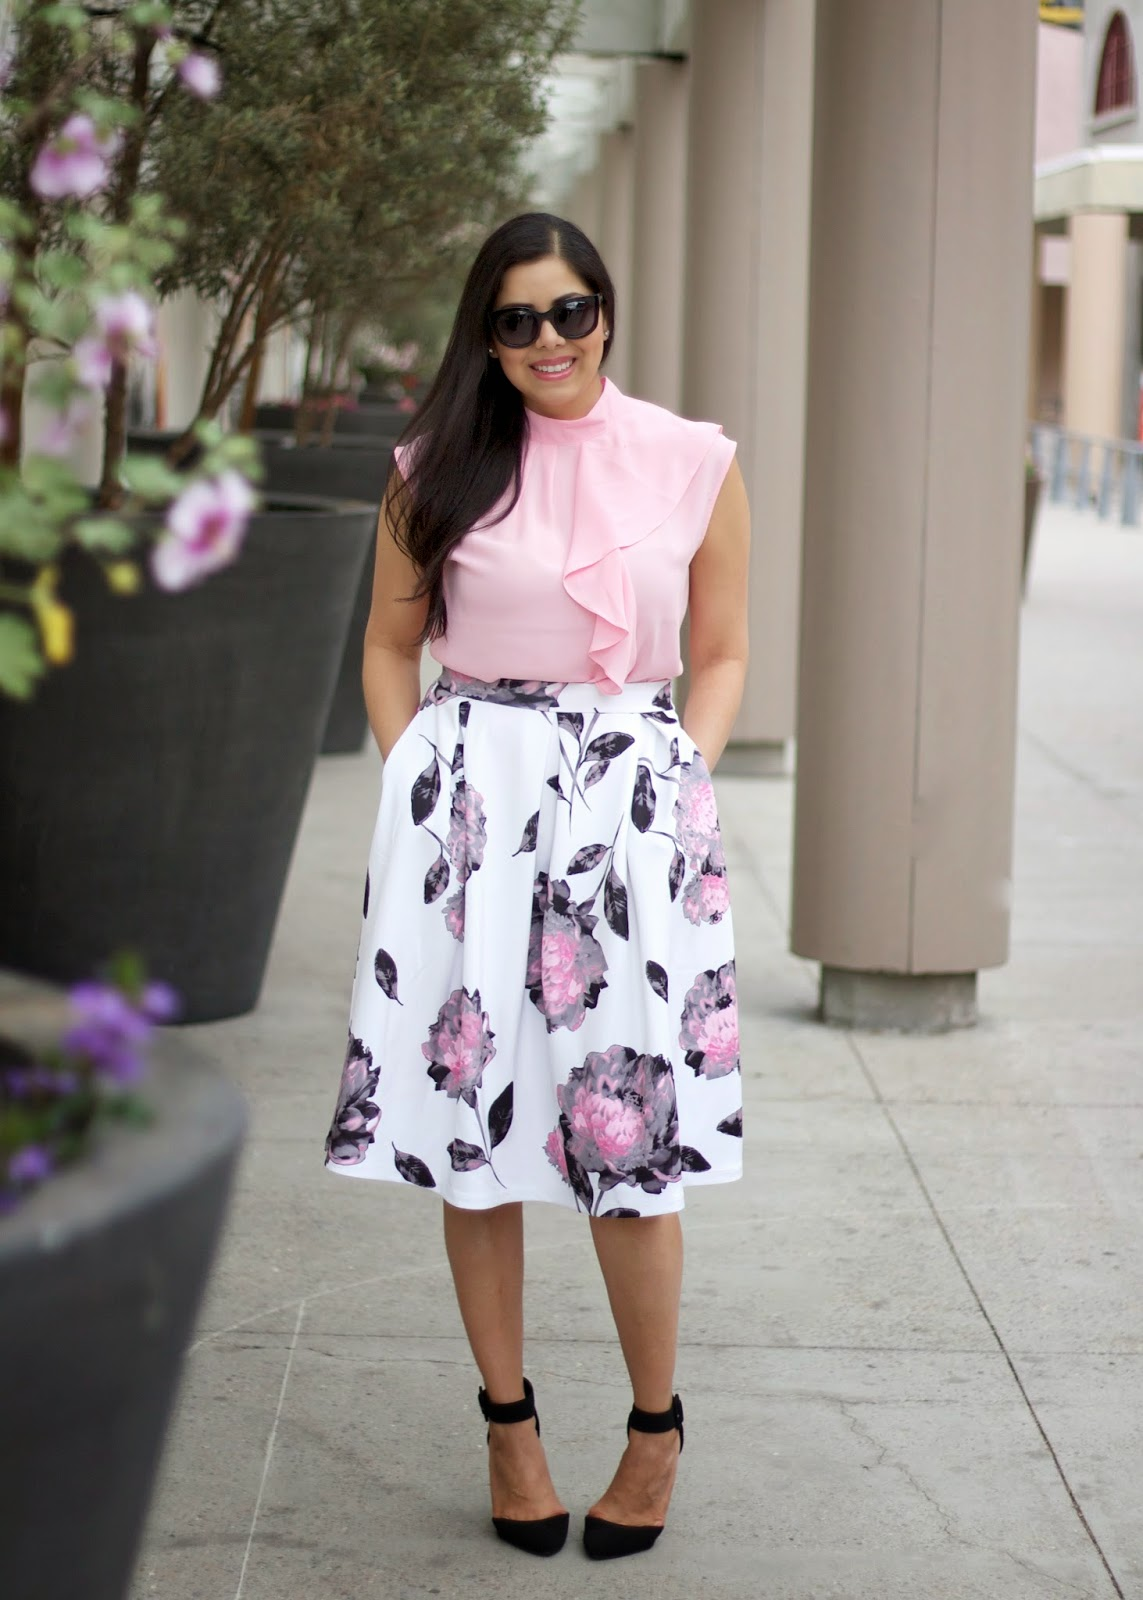 Midi skirt outfit, how to wear a midi skirt, valentine's day outfit midi skirt